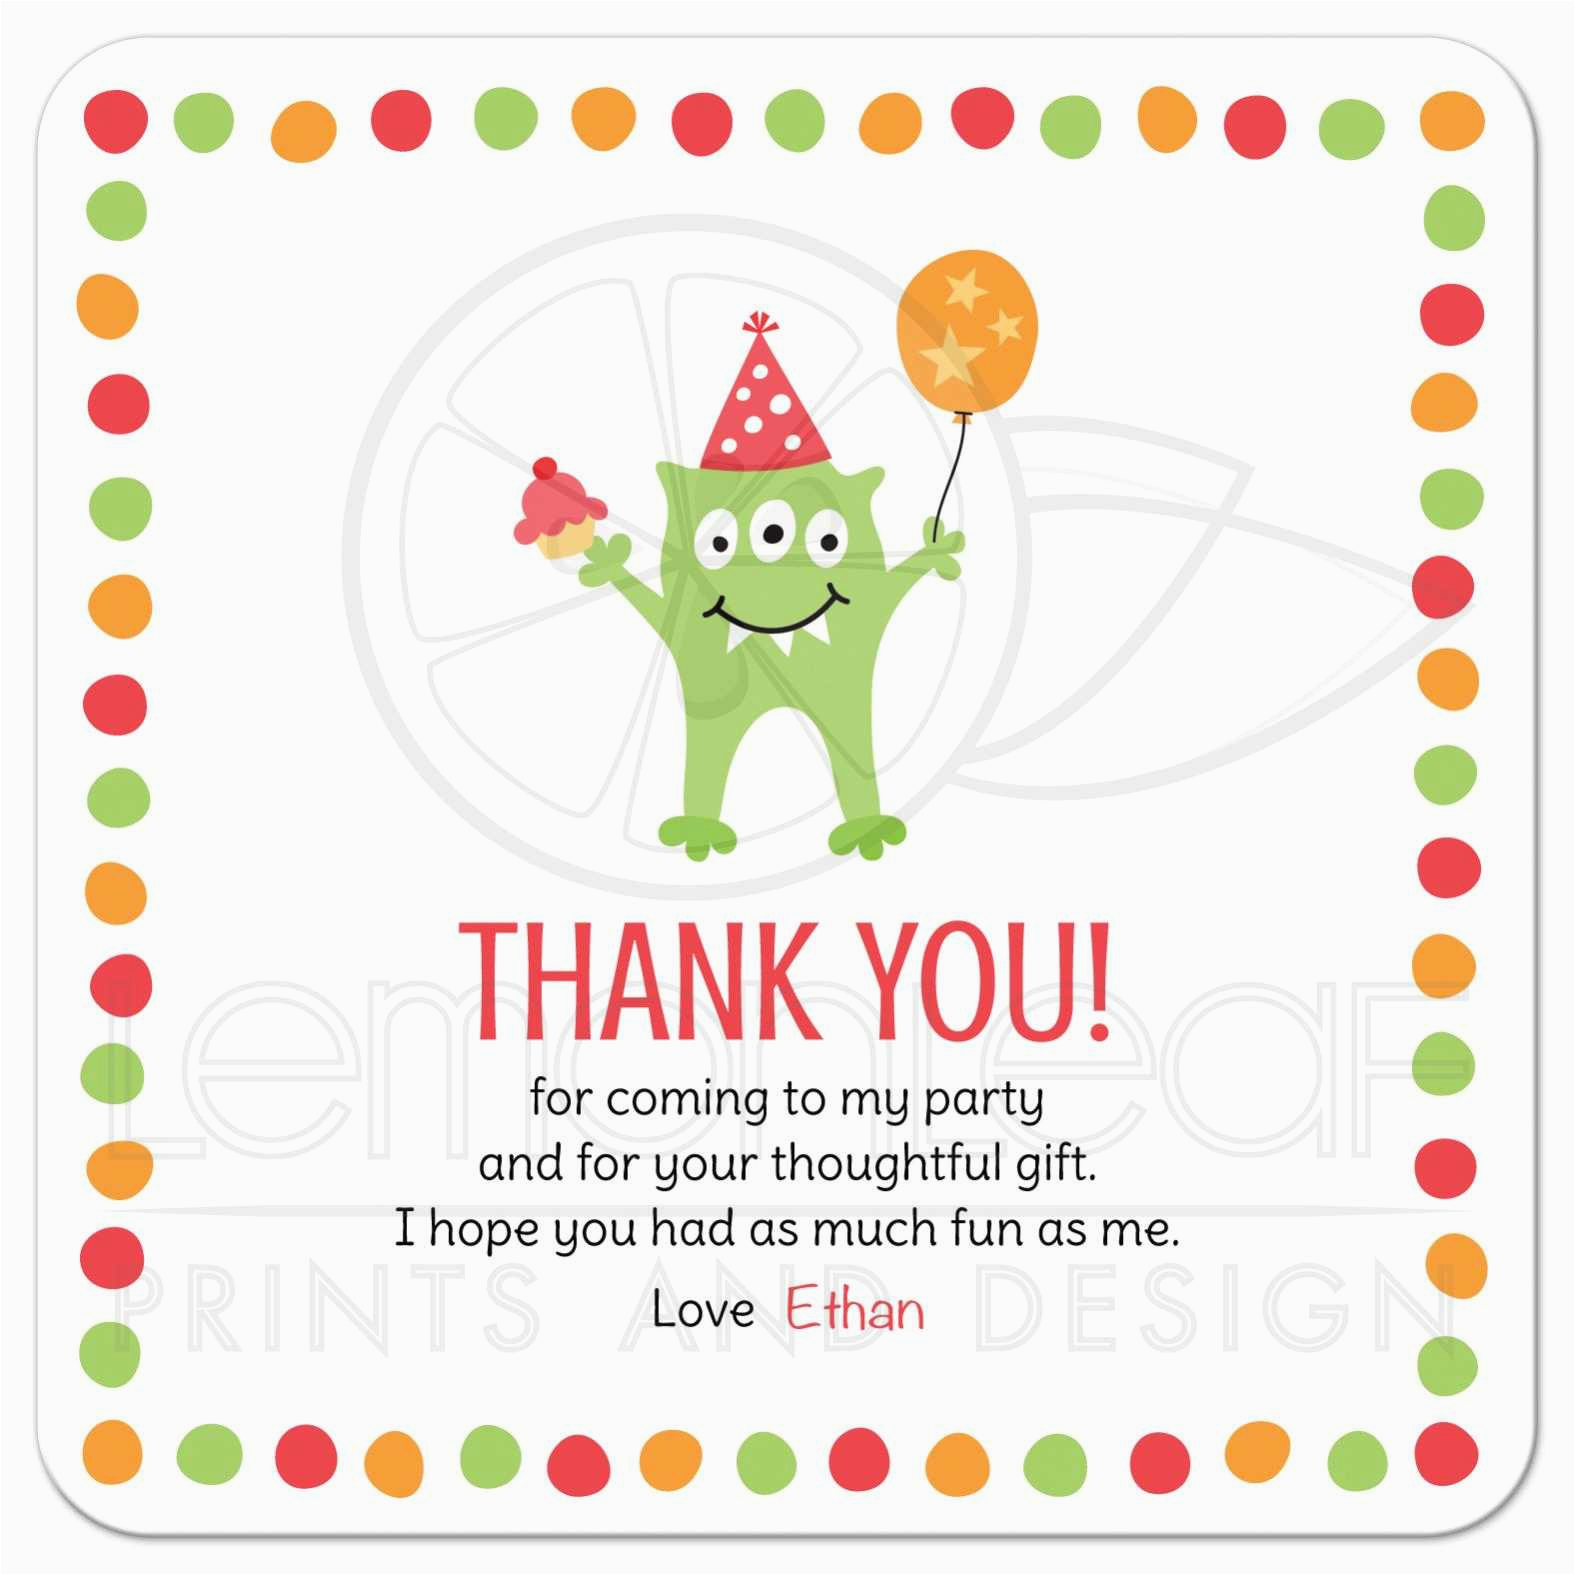 monster with three eyes balloon and party hat birthday party thank you card with personalized text